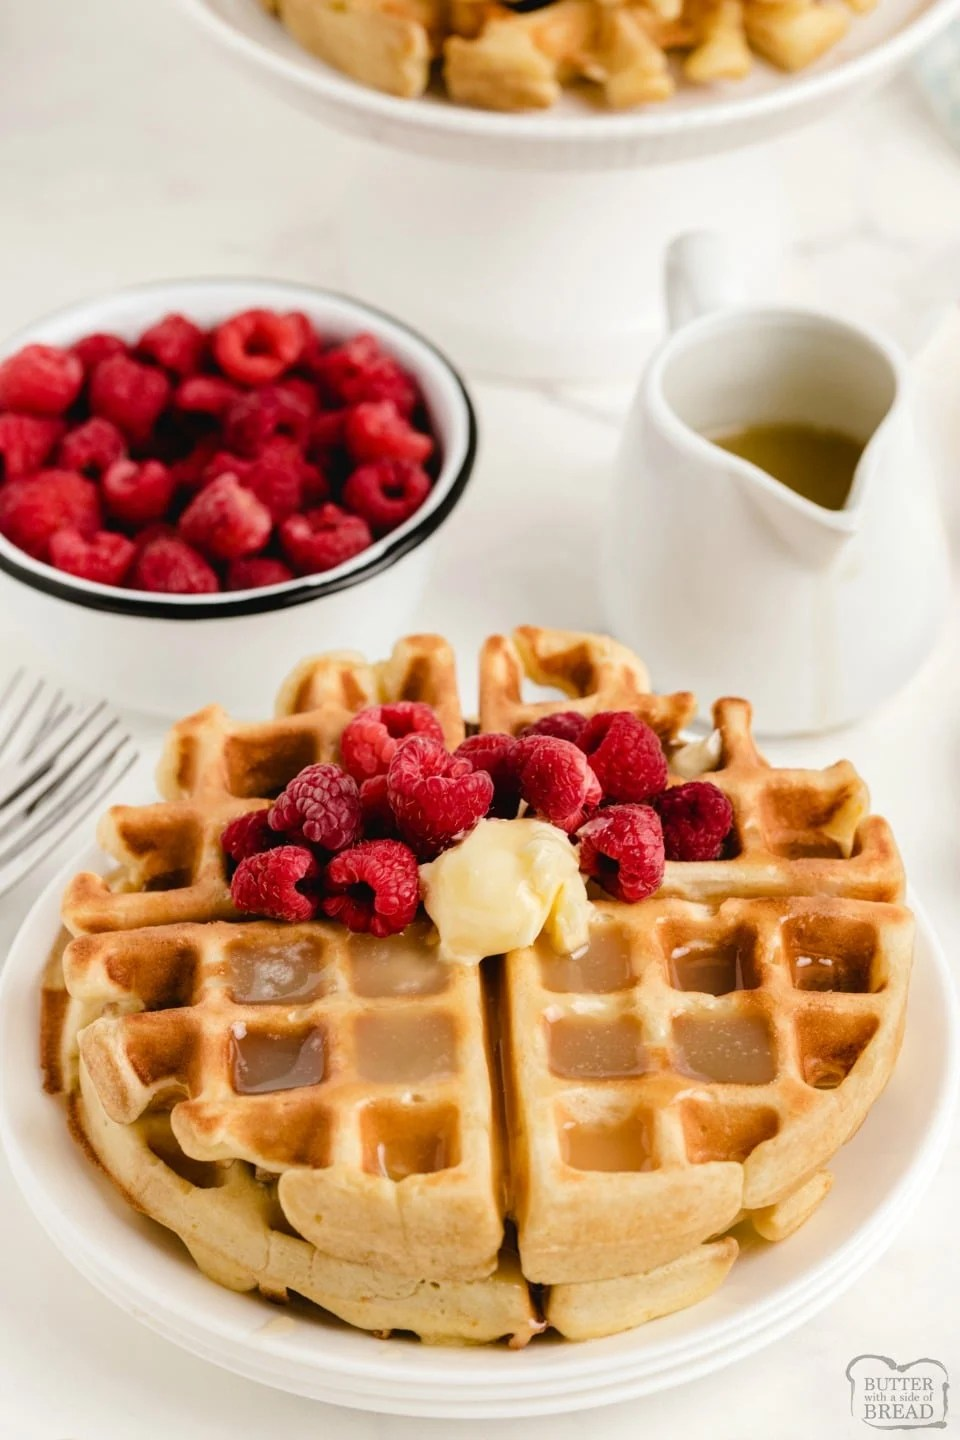 Vanilla Orange Waffles are a sweet citrus waffle served with homemade vanilla butter syrup. Fantastic variation on a traditional waffle recipe that everyone loves!